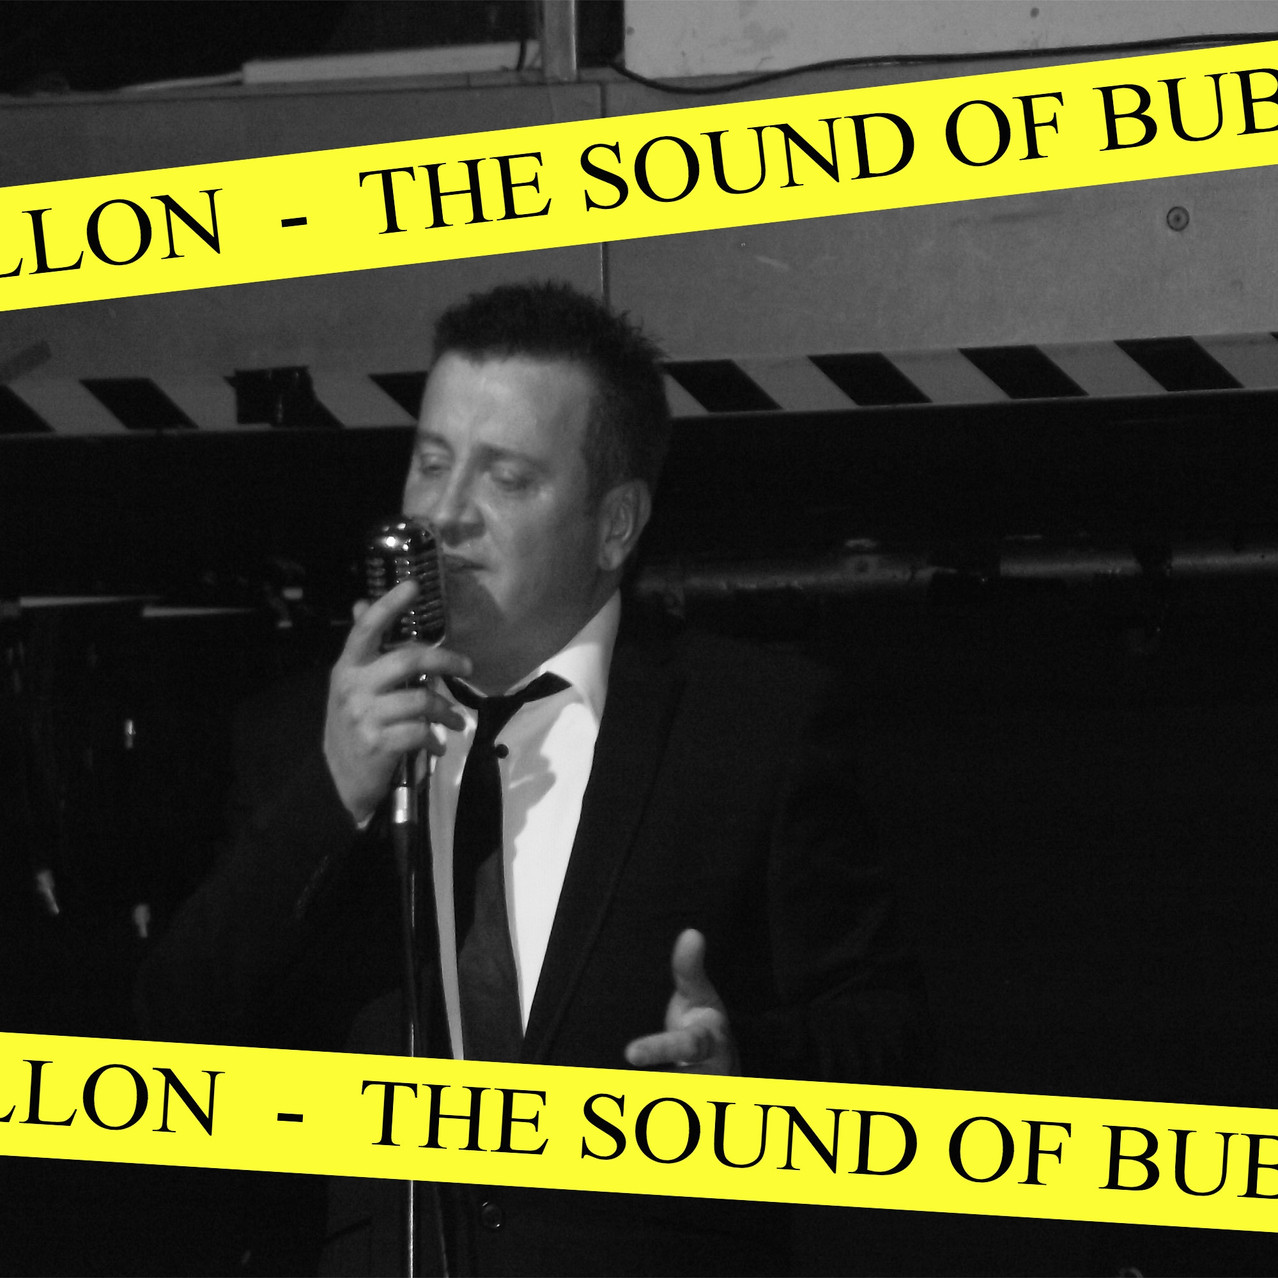 The Sound Of Buble